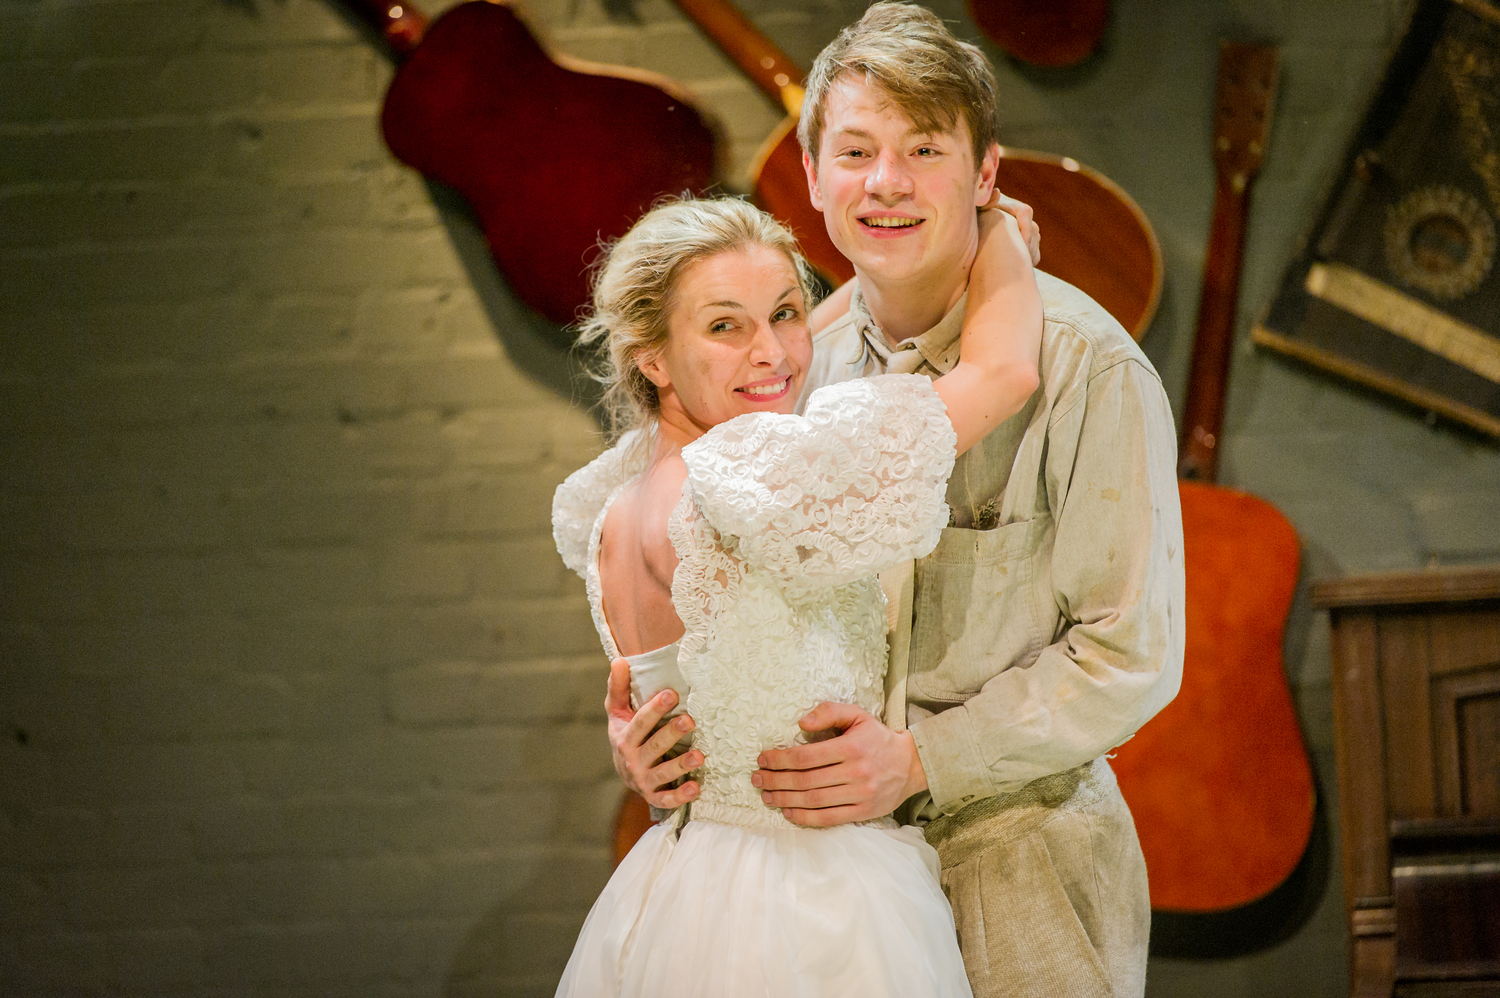 Joanna Hickman & Sam Townsend in As You Like It, composed by Jude Obermüller (photo by Robert Workman)